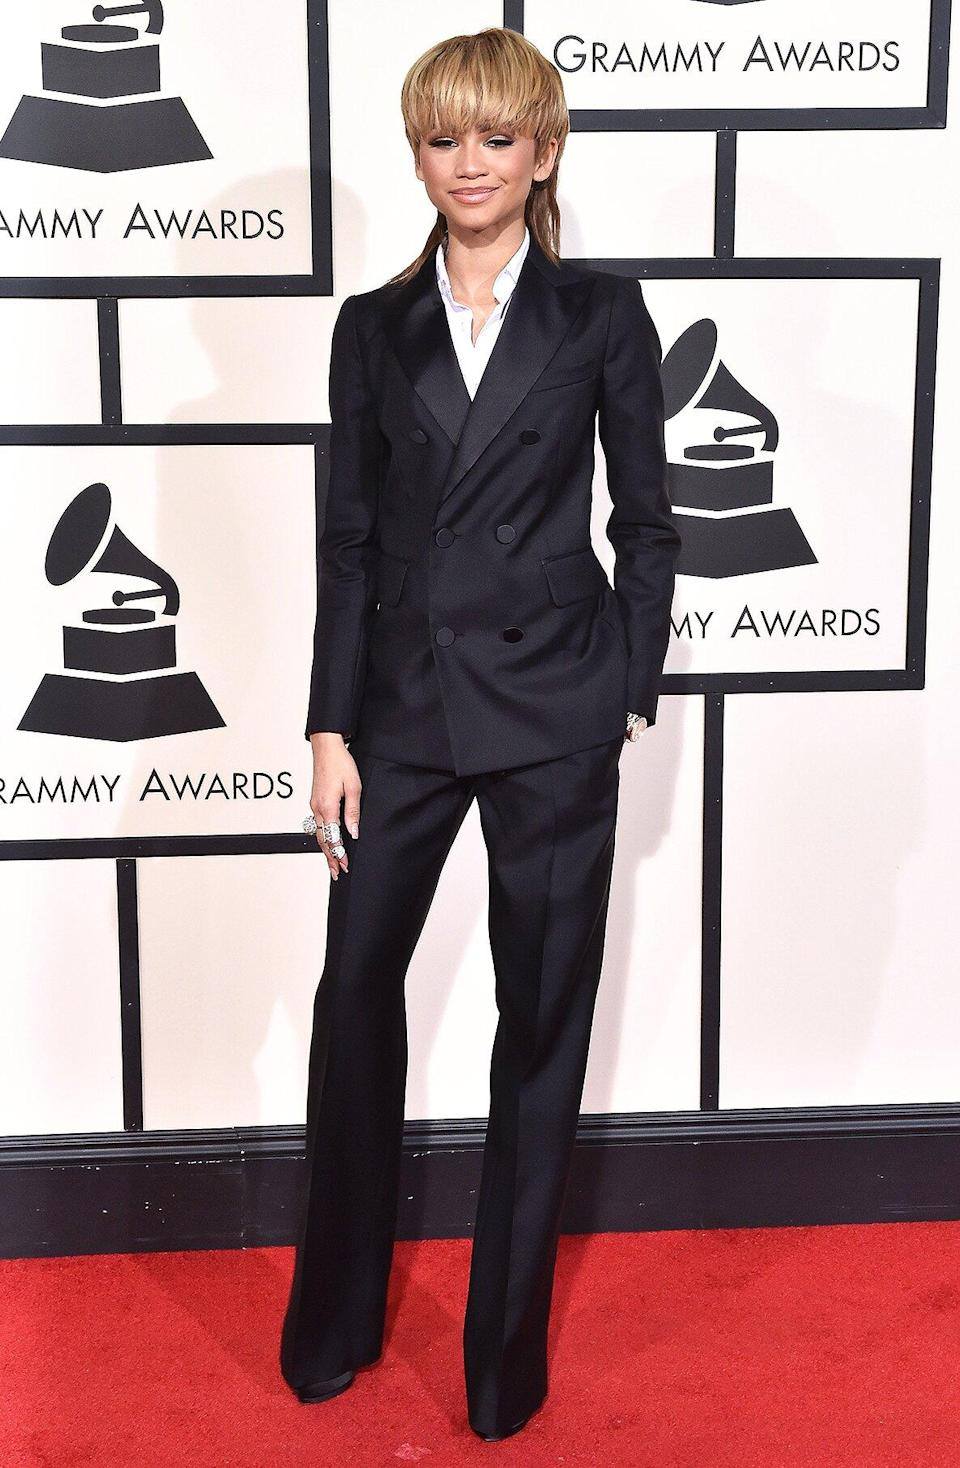 Actress/singer Zendaya arrives at The 58th GRAMMY Awards at Staples Center on February 15, 2016